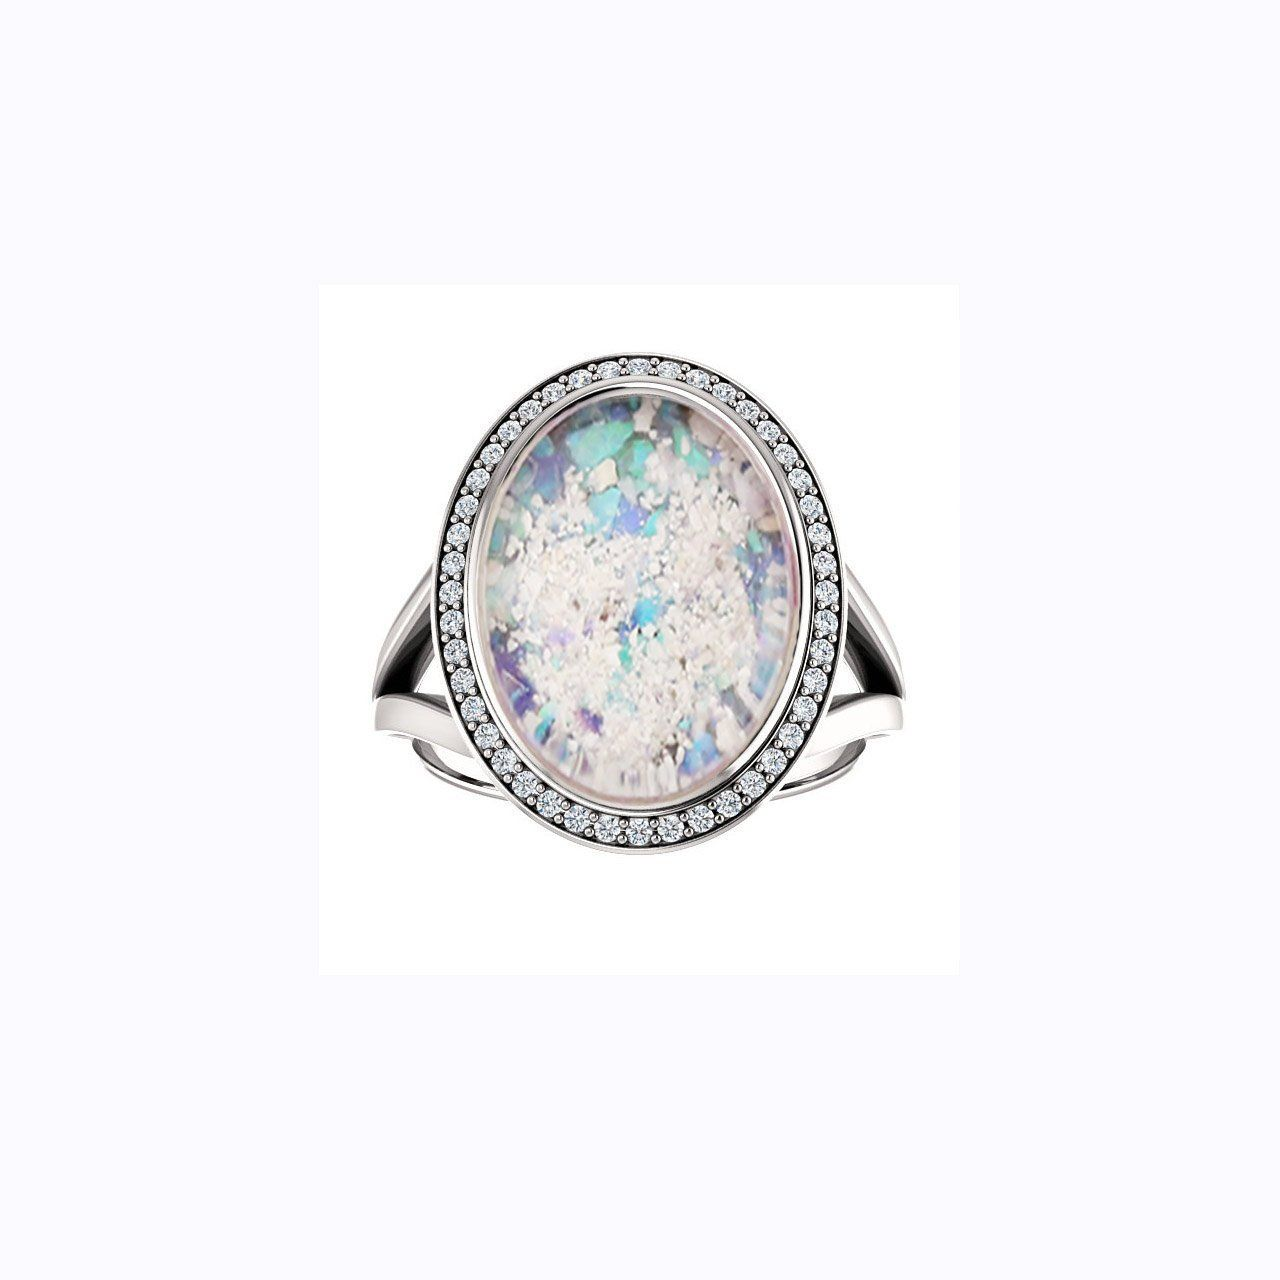 10x14mm Oval Opal Cremation Ring 10k White Gold And Diamond Ring Cremation Jewelry Ash Ring Ash Jewelry Ashes Jewelry Opal Rings Memorial Jewelry Ashes